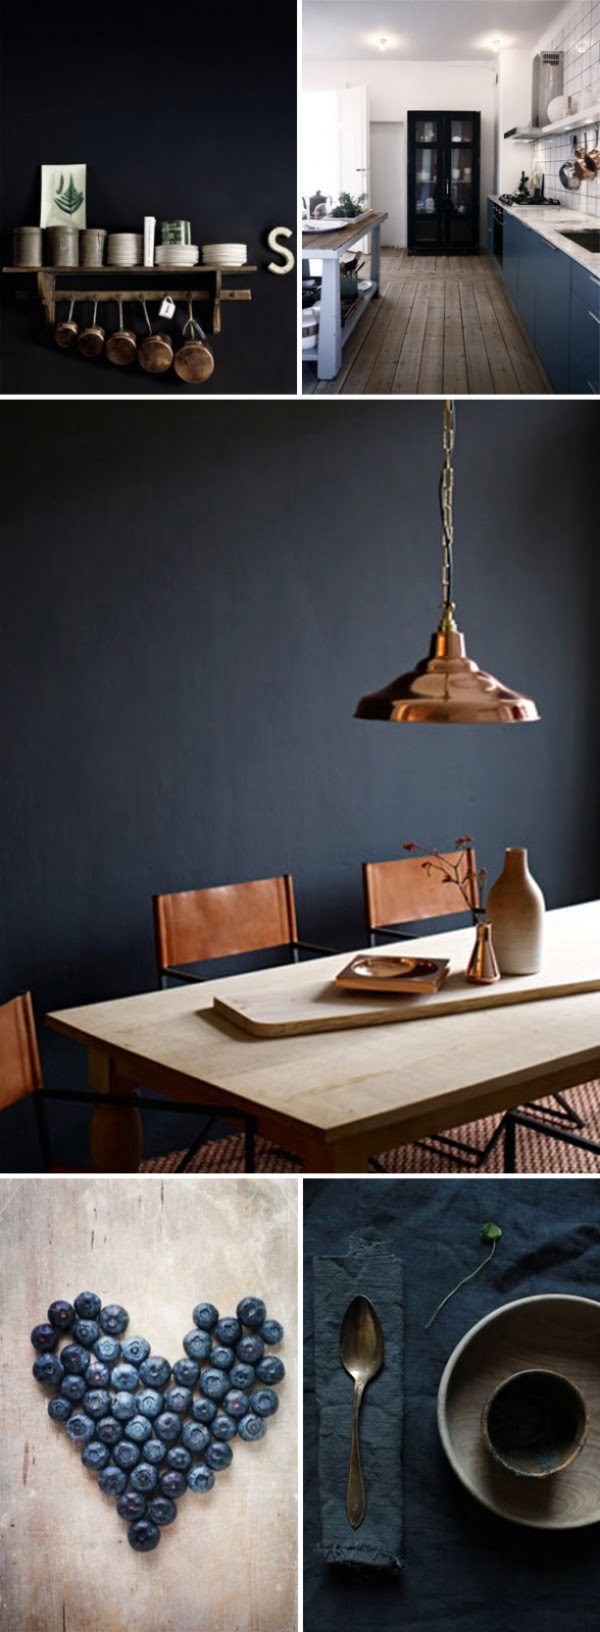 Love the navy blue decor with copper accents